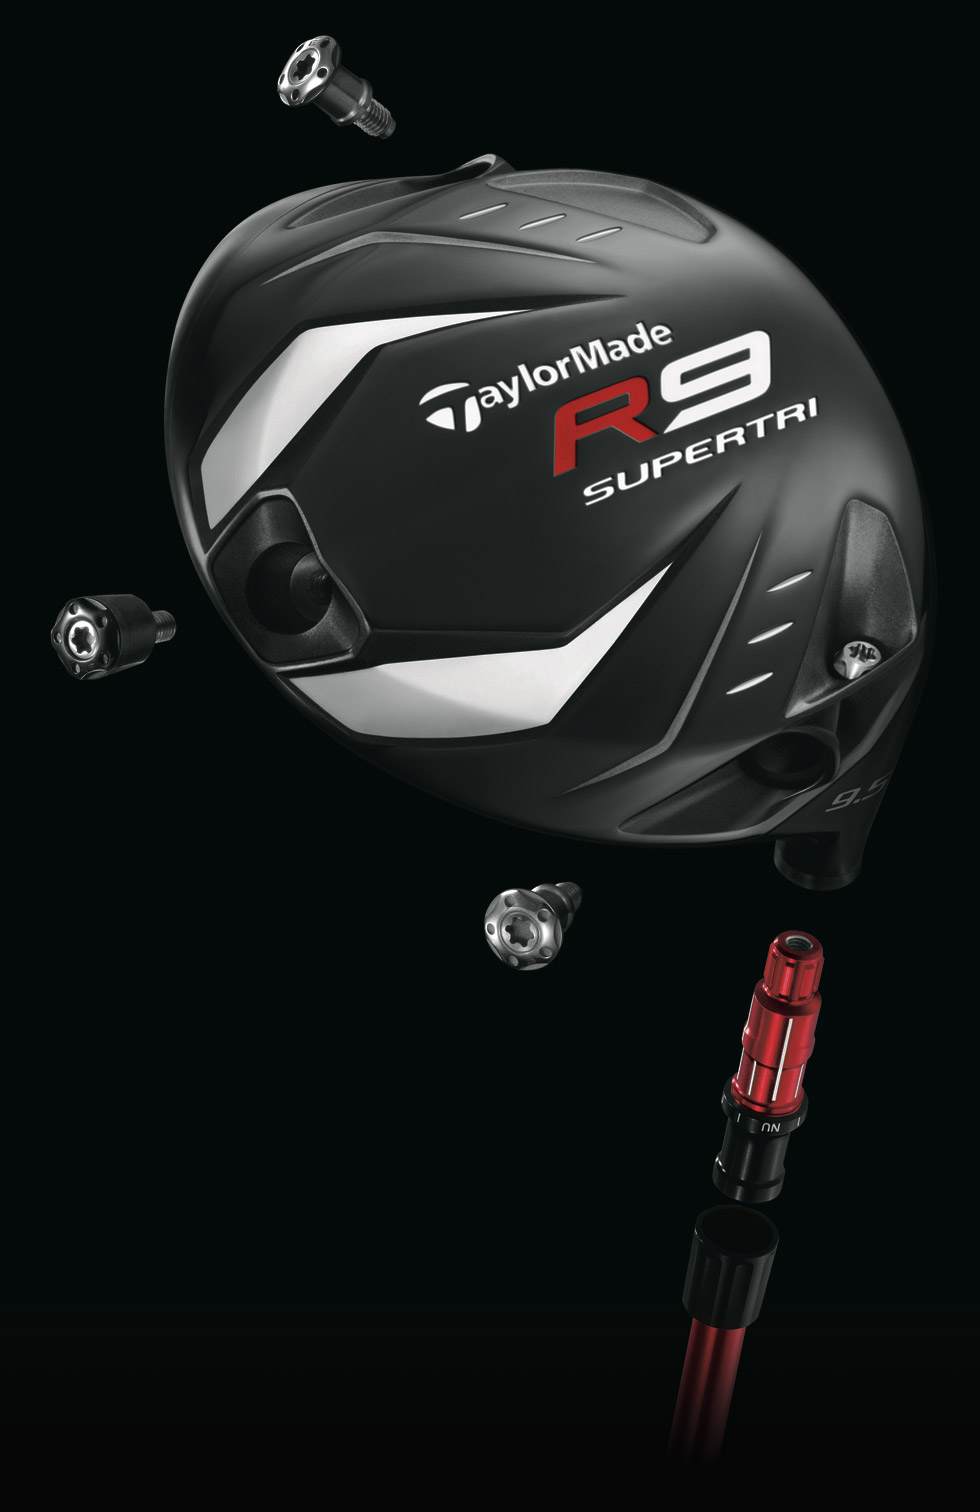 TaylorMade R9 SuperTri